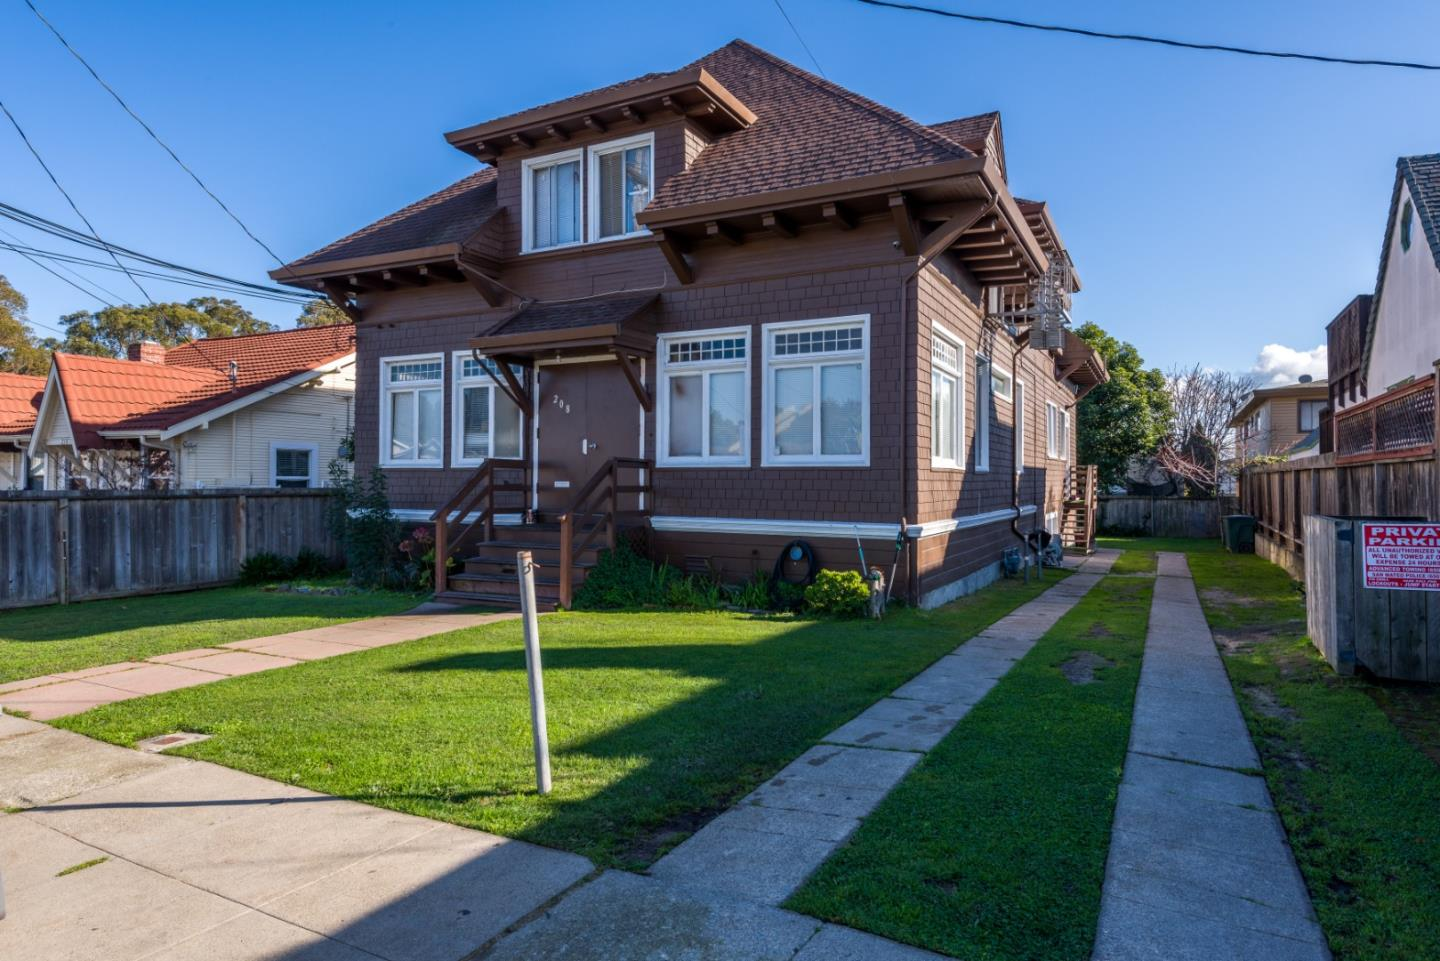 Detail Gallery Image 1 of 6 For 208 San Diego Ave, San Bruno, CA 94066 - – Beds | – Baths